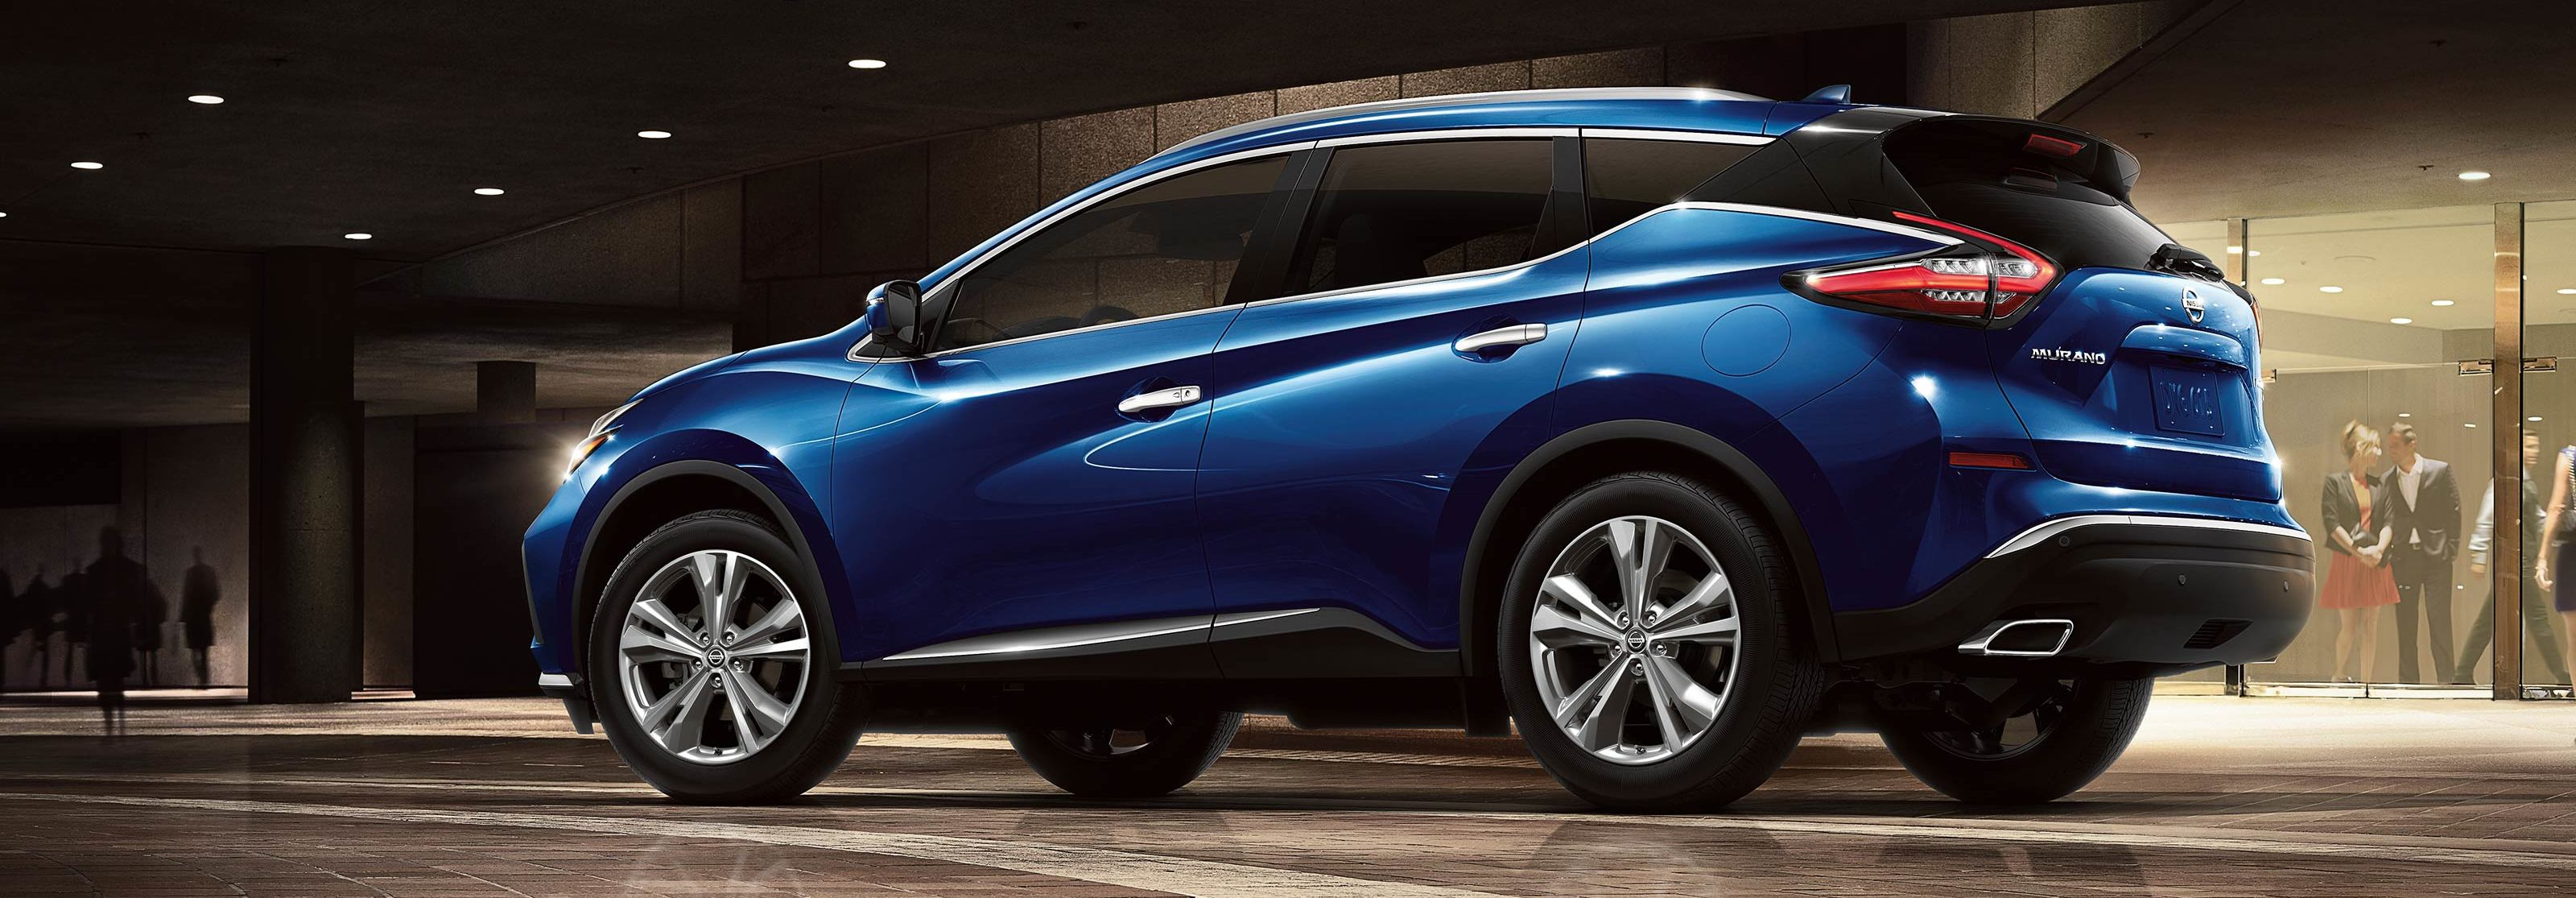 2020 Nissan Murano Key Features near Sacramento, CA